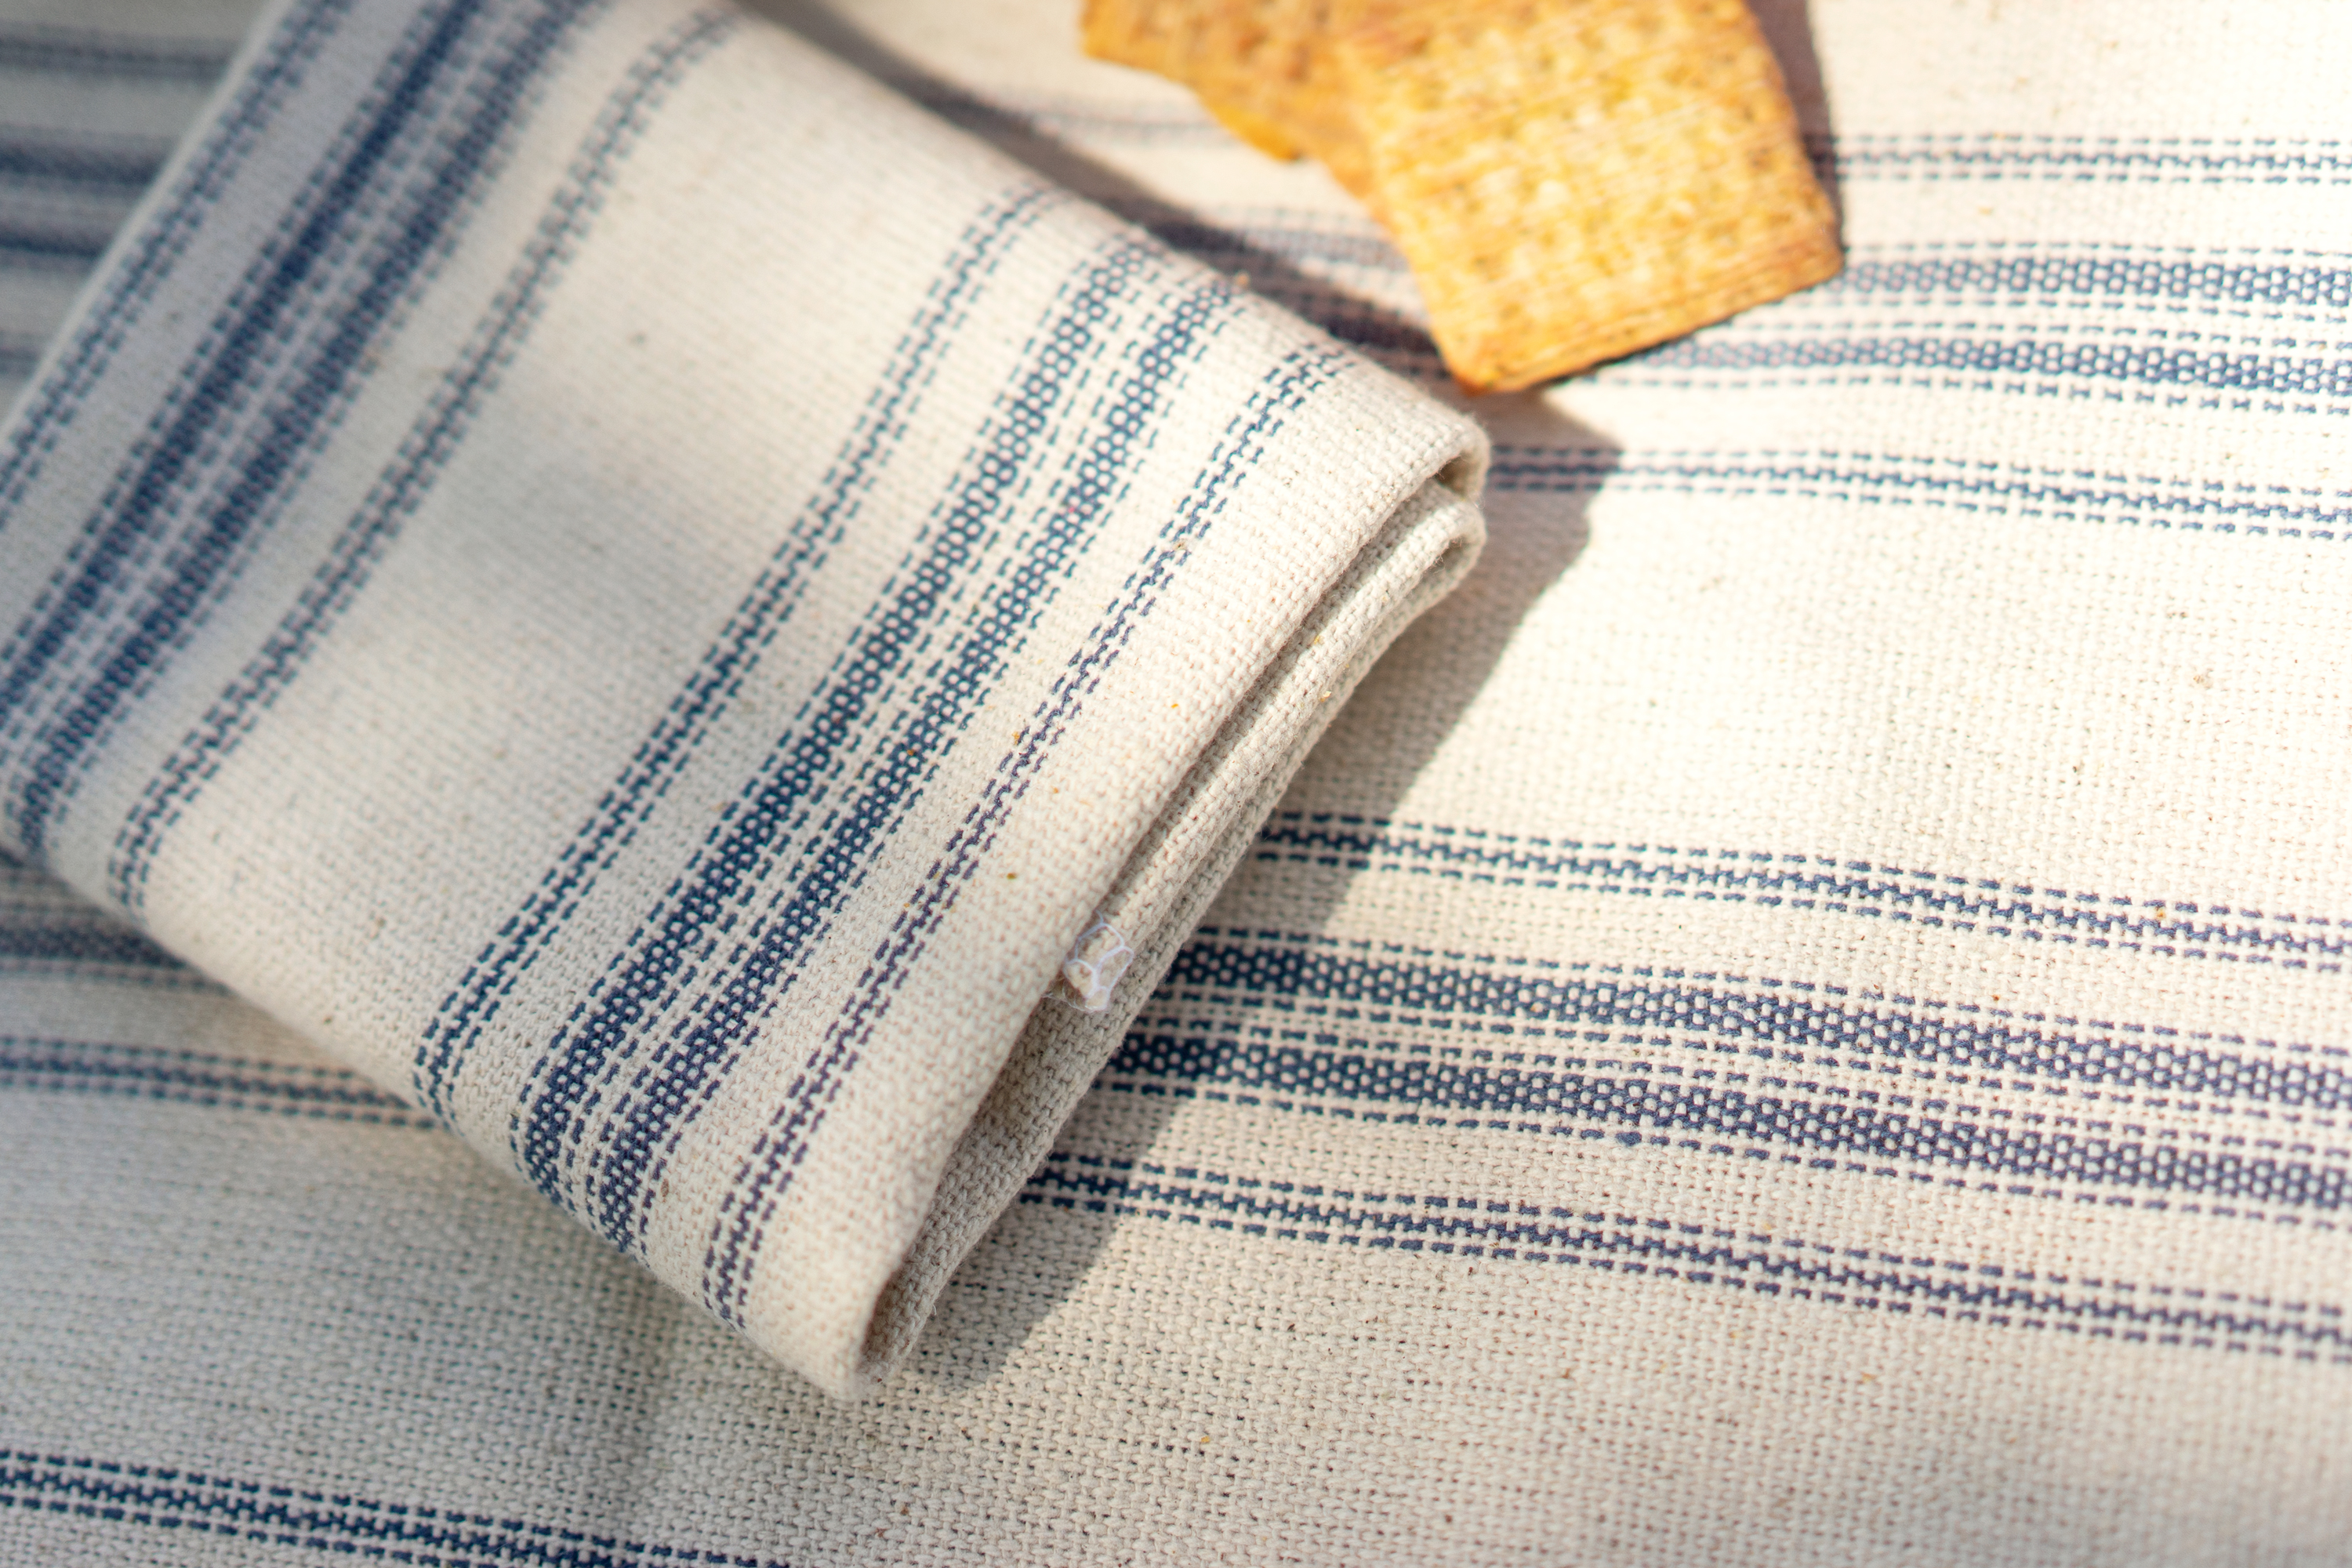 Triple-stitched Napkins